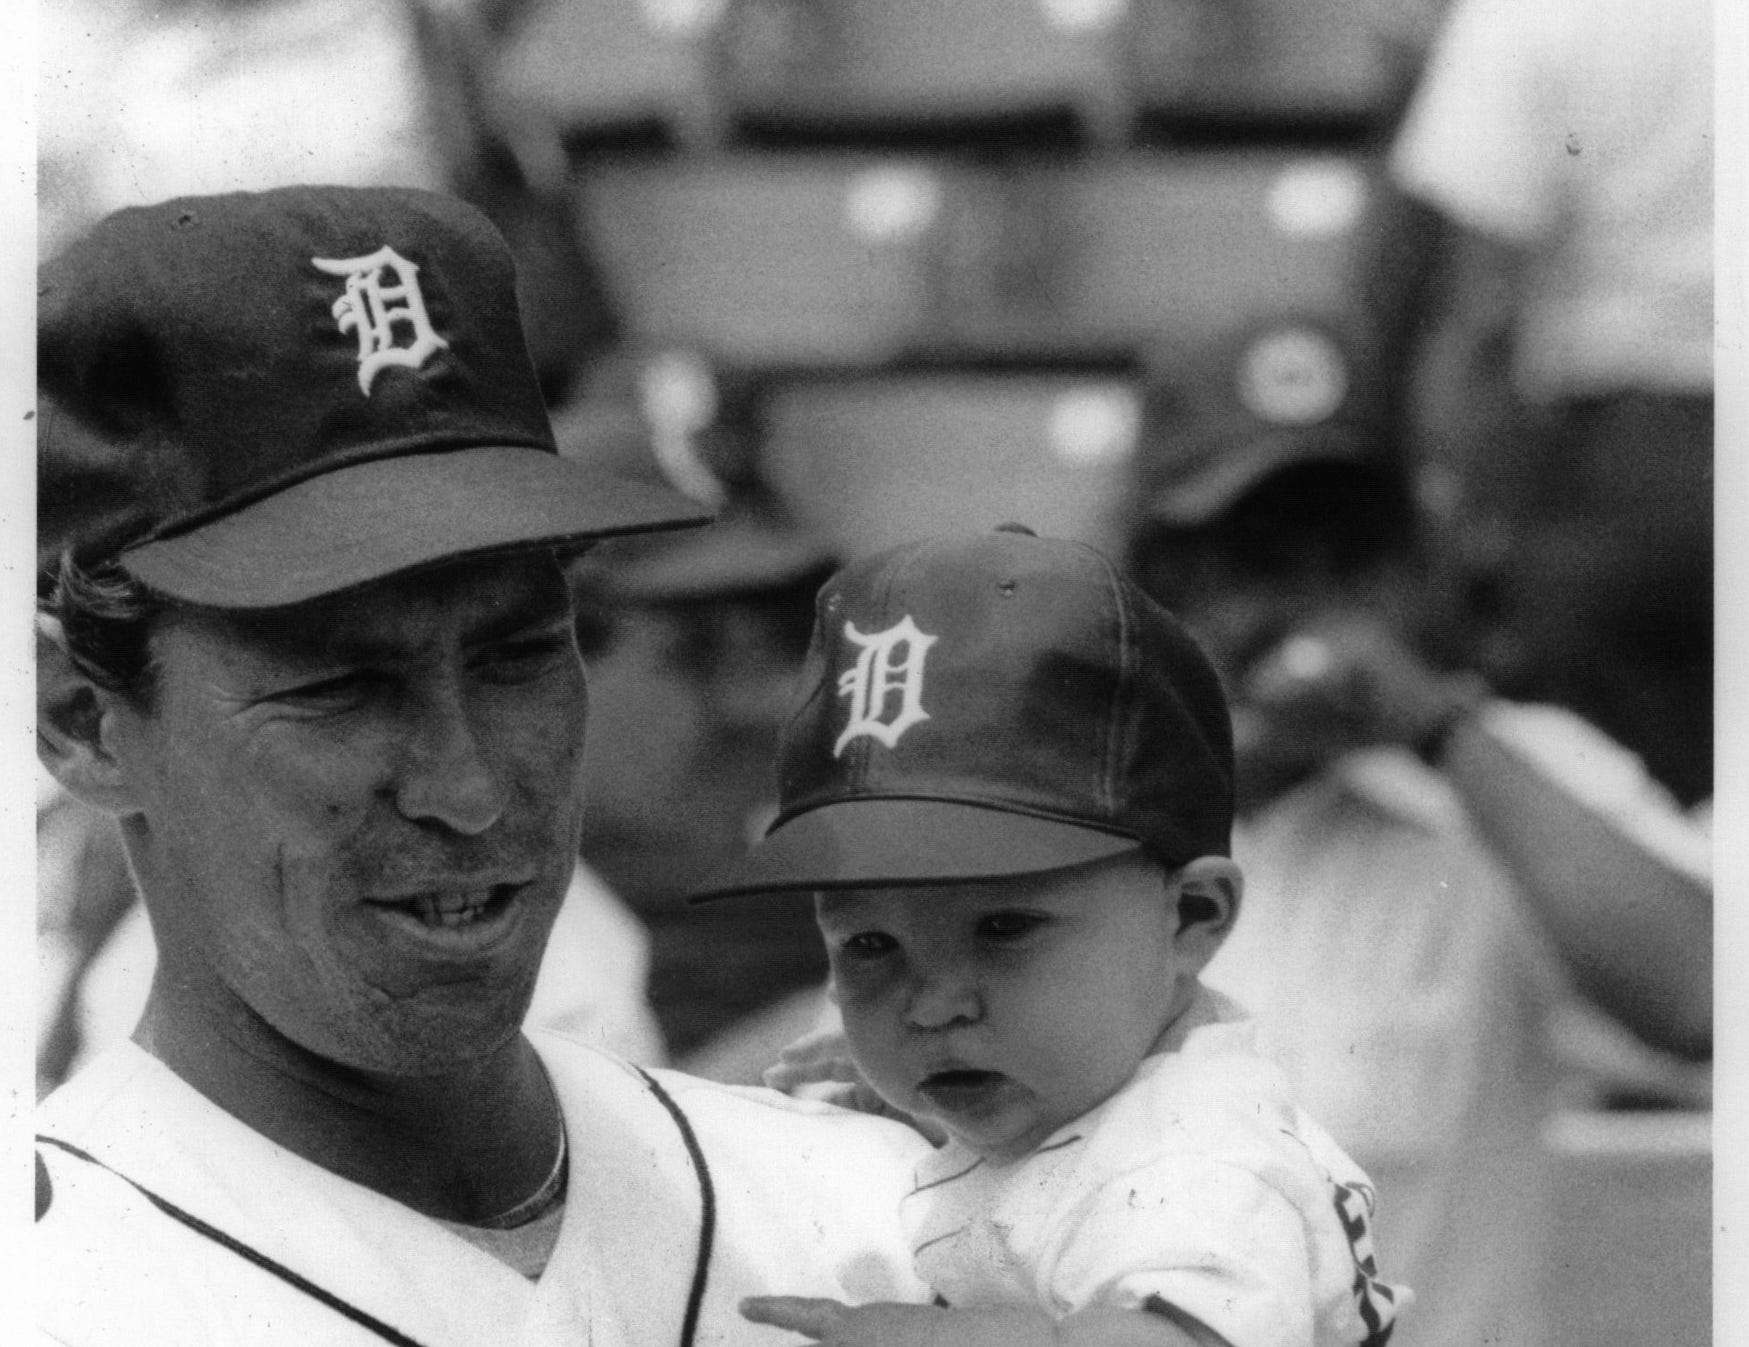 Alan Trammel holds son Kyle, who celebrated his sixth month as a Tiny Tiger on Saturday, June 24, 1884.